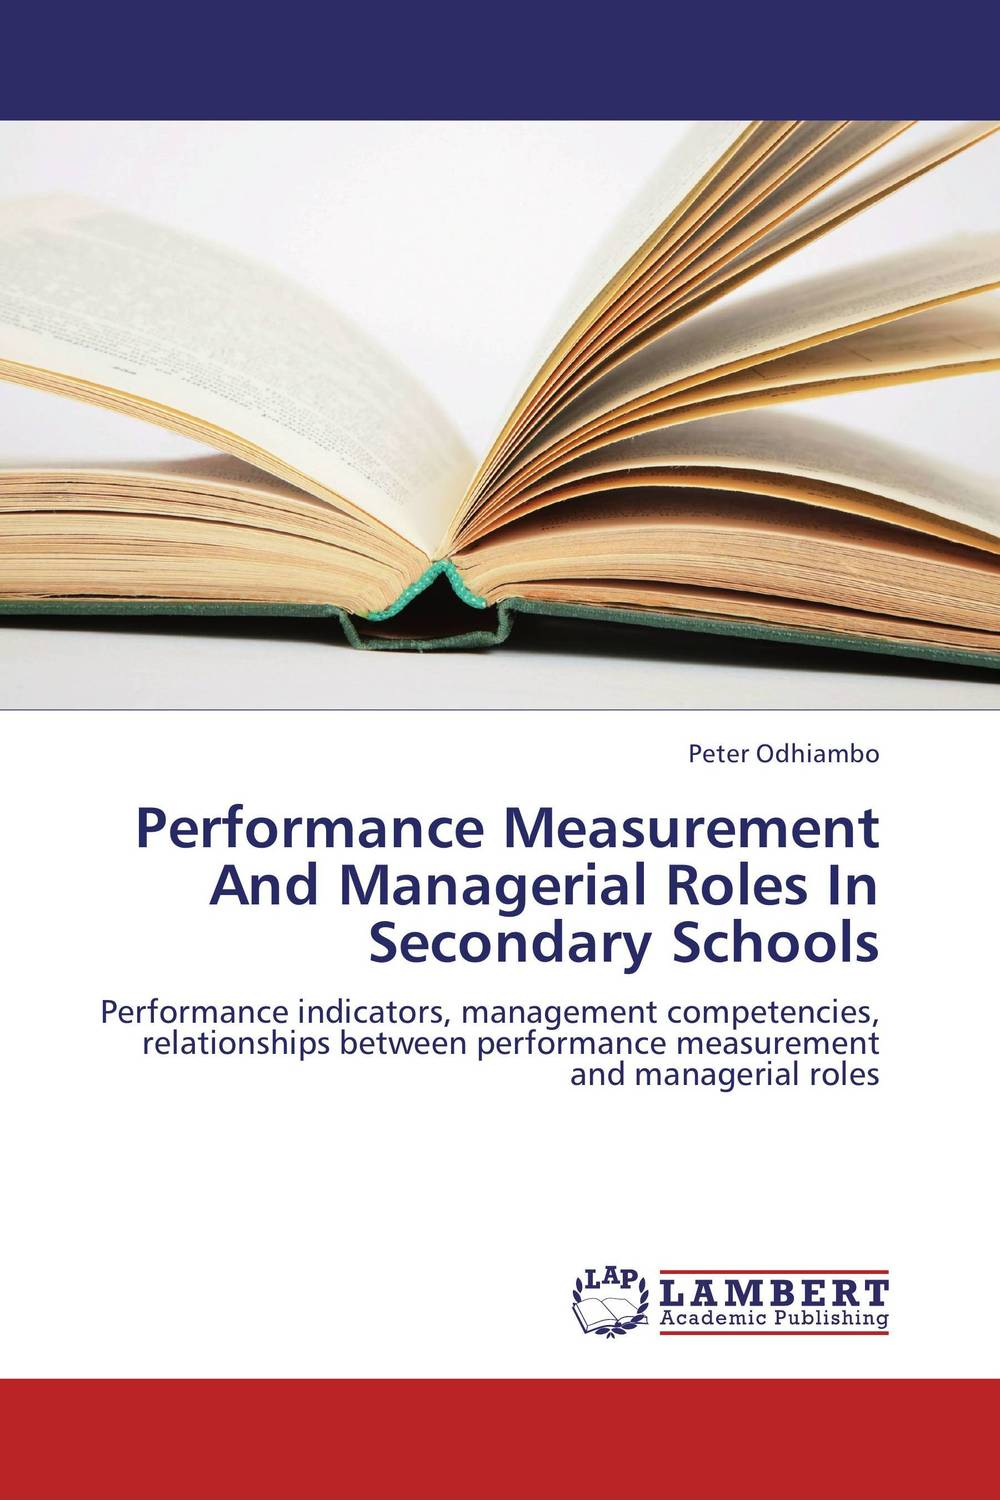 Performance Measurement And Managerial Roles In Secondary Schools david parmenter key performance indicators